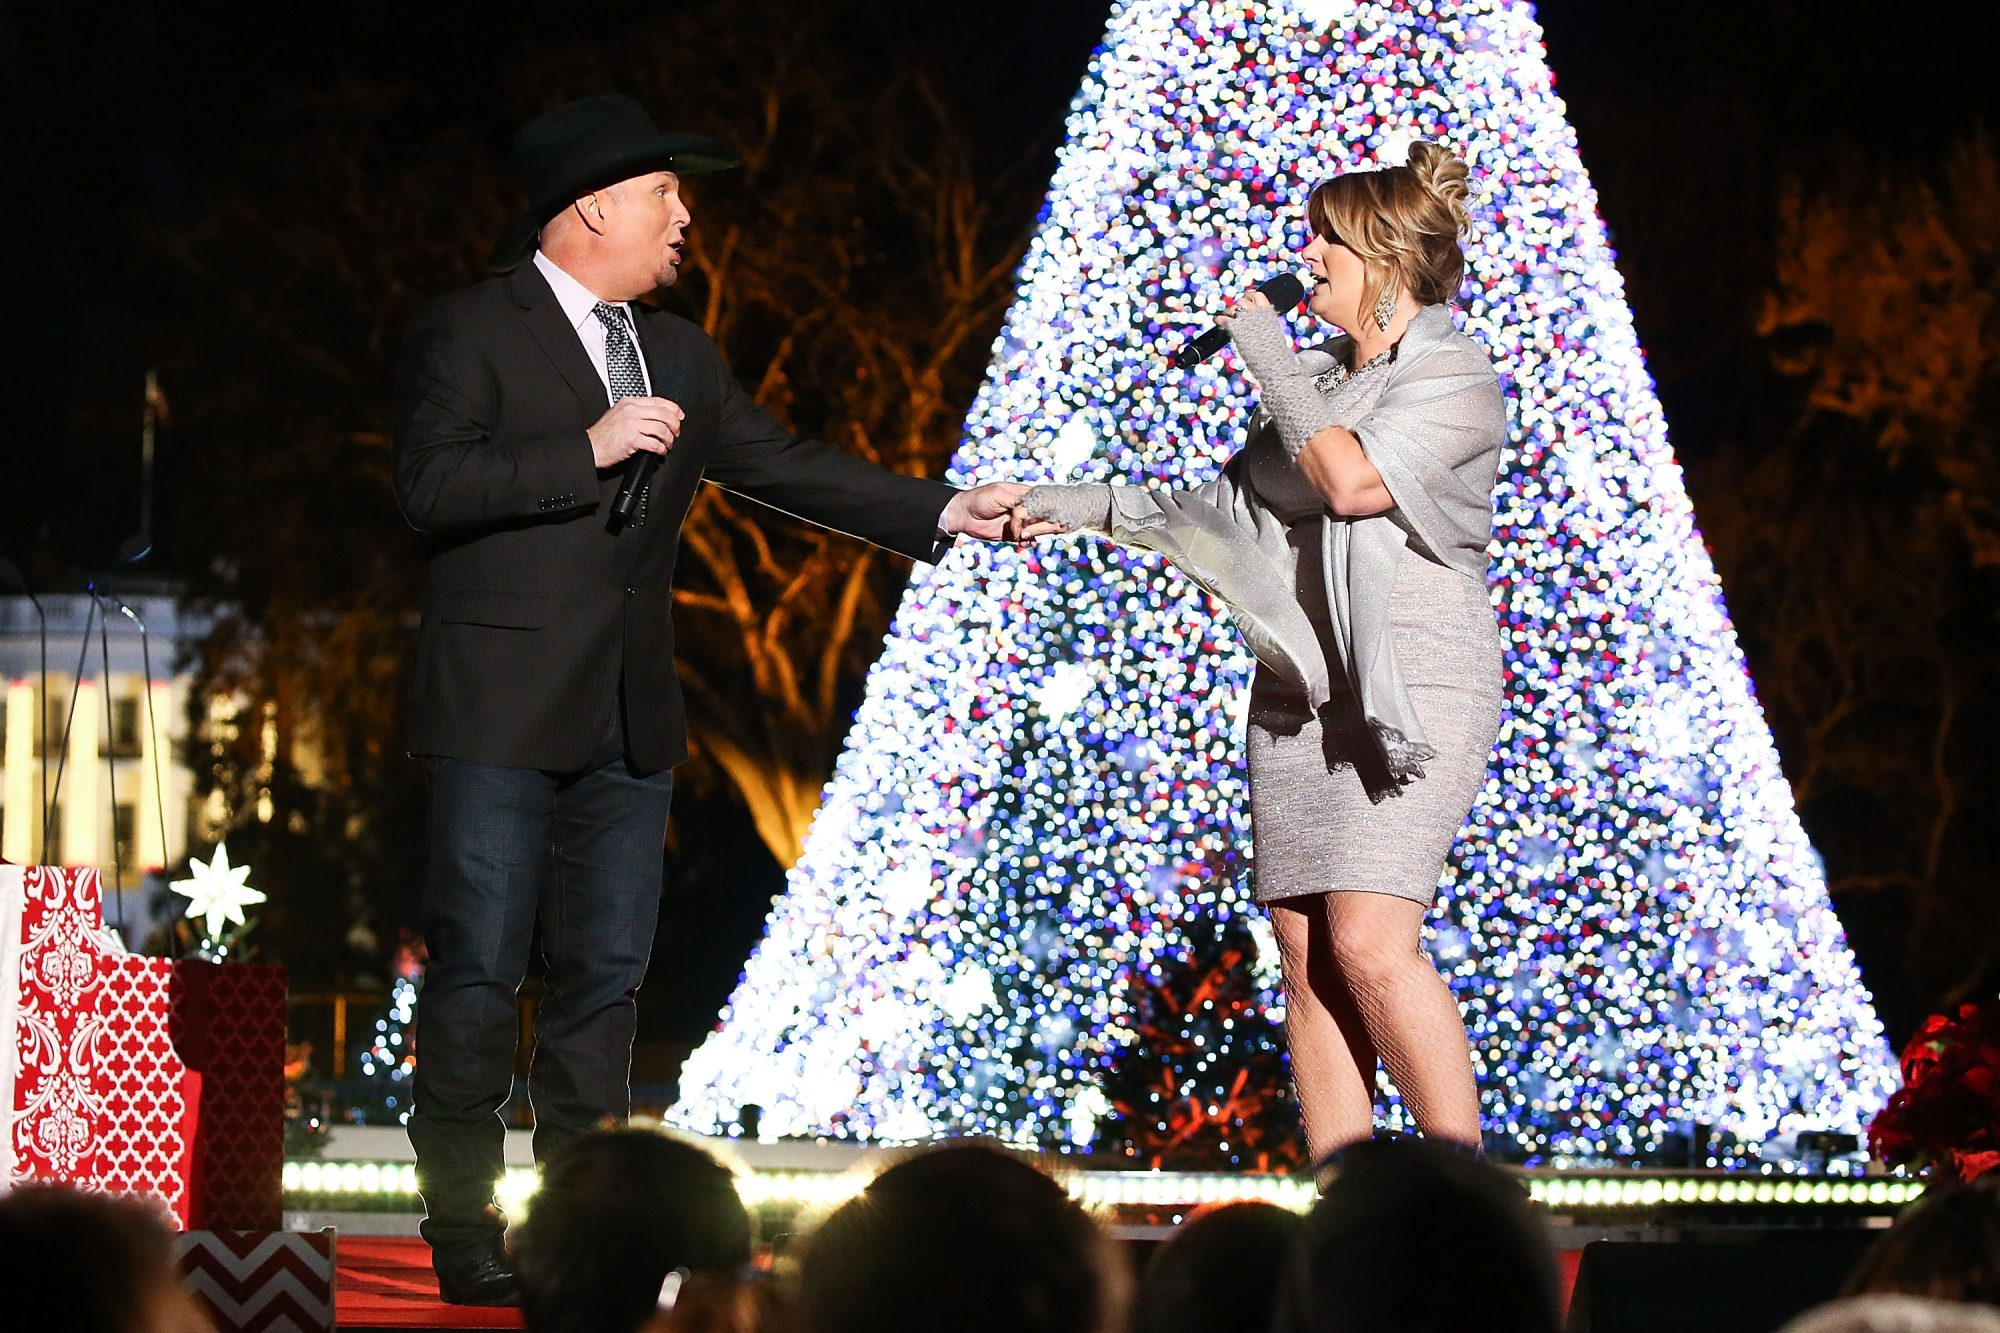 Garth Brooks and Trish Yearwoowd at DC Christmas Tree Lighting Ceremony